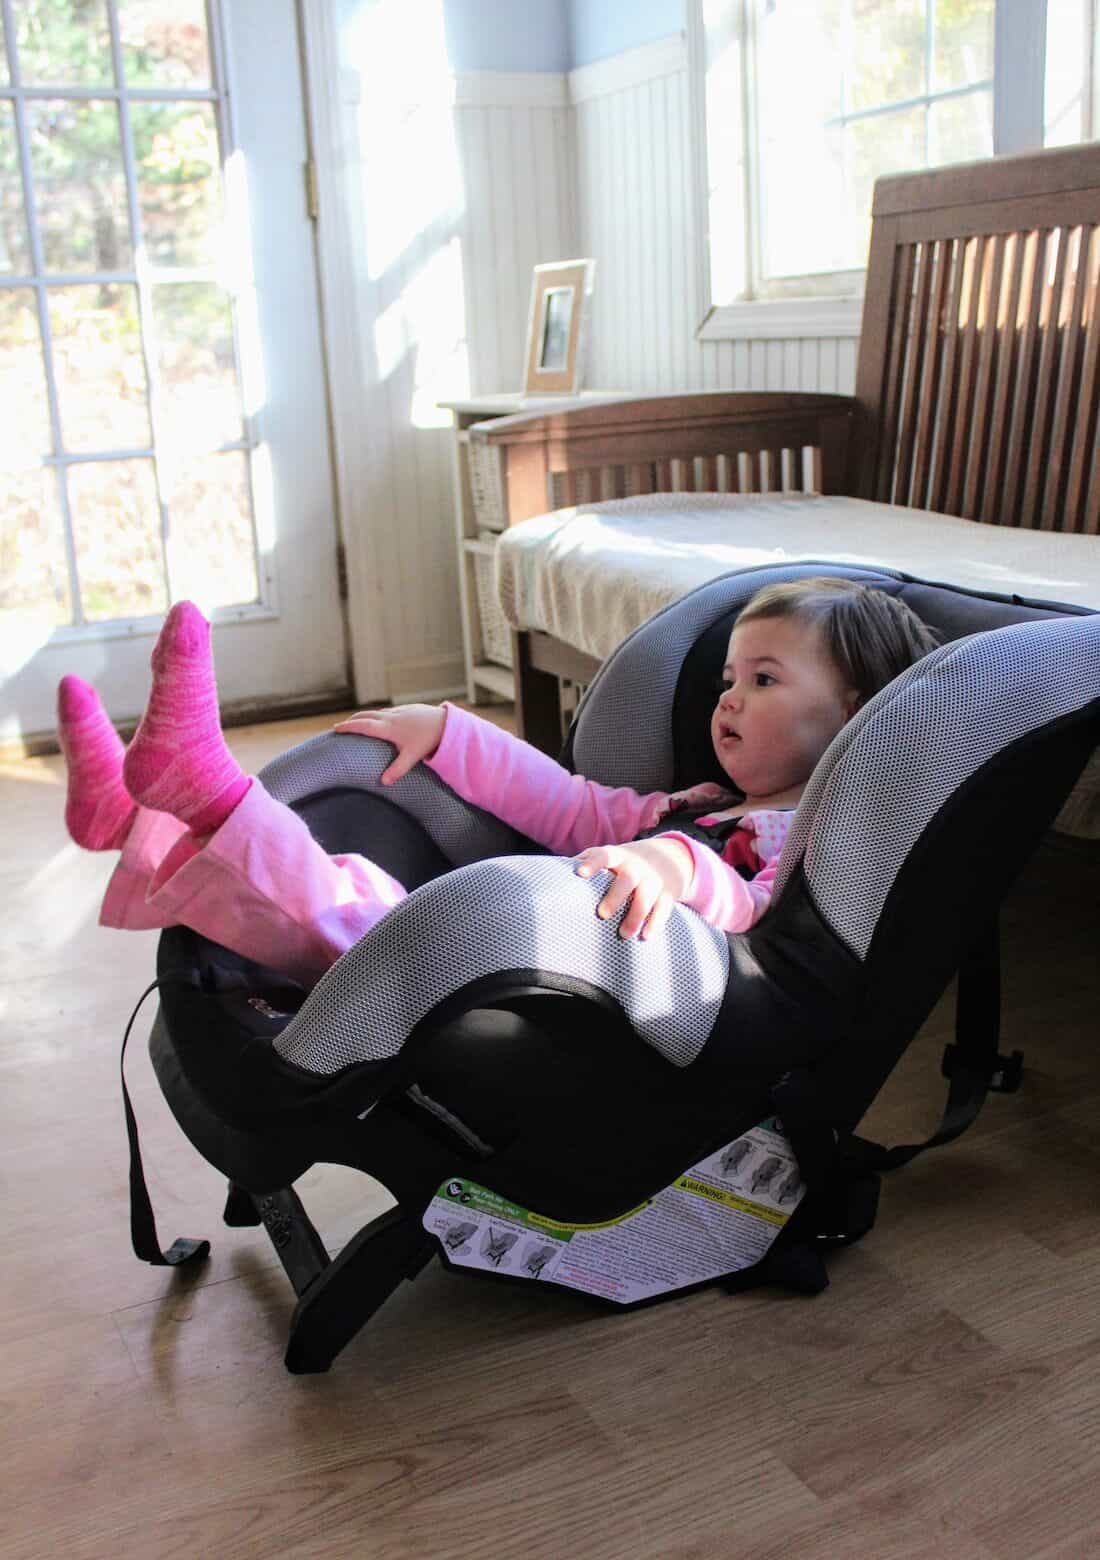 Toddler girl sits in Car Seat inside of house.